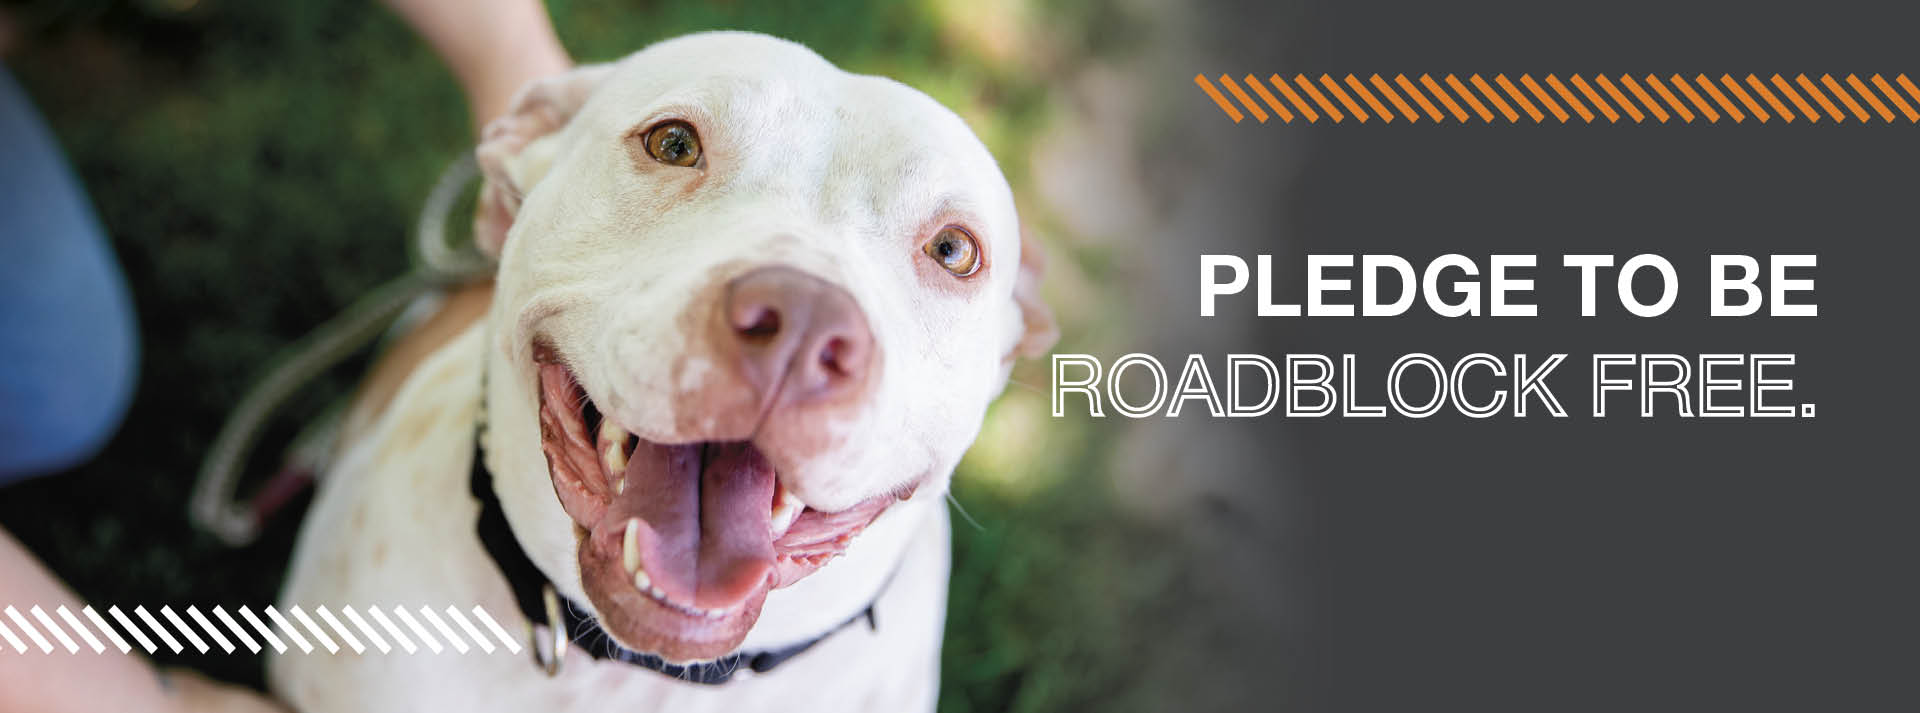 White pit bull dog looking at camera with mouth open with roadblock free text to the right